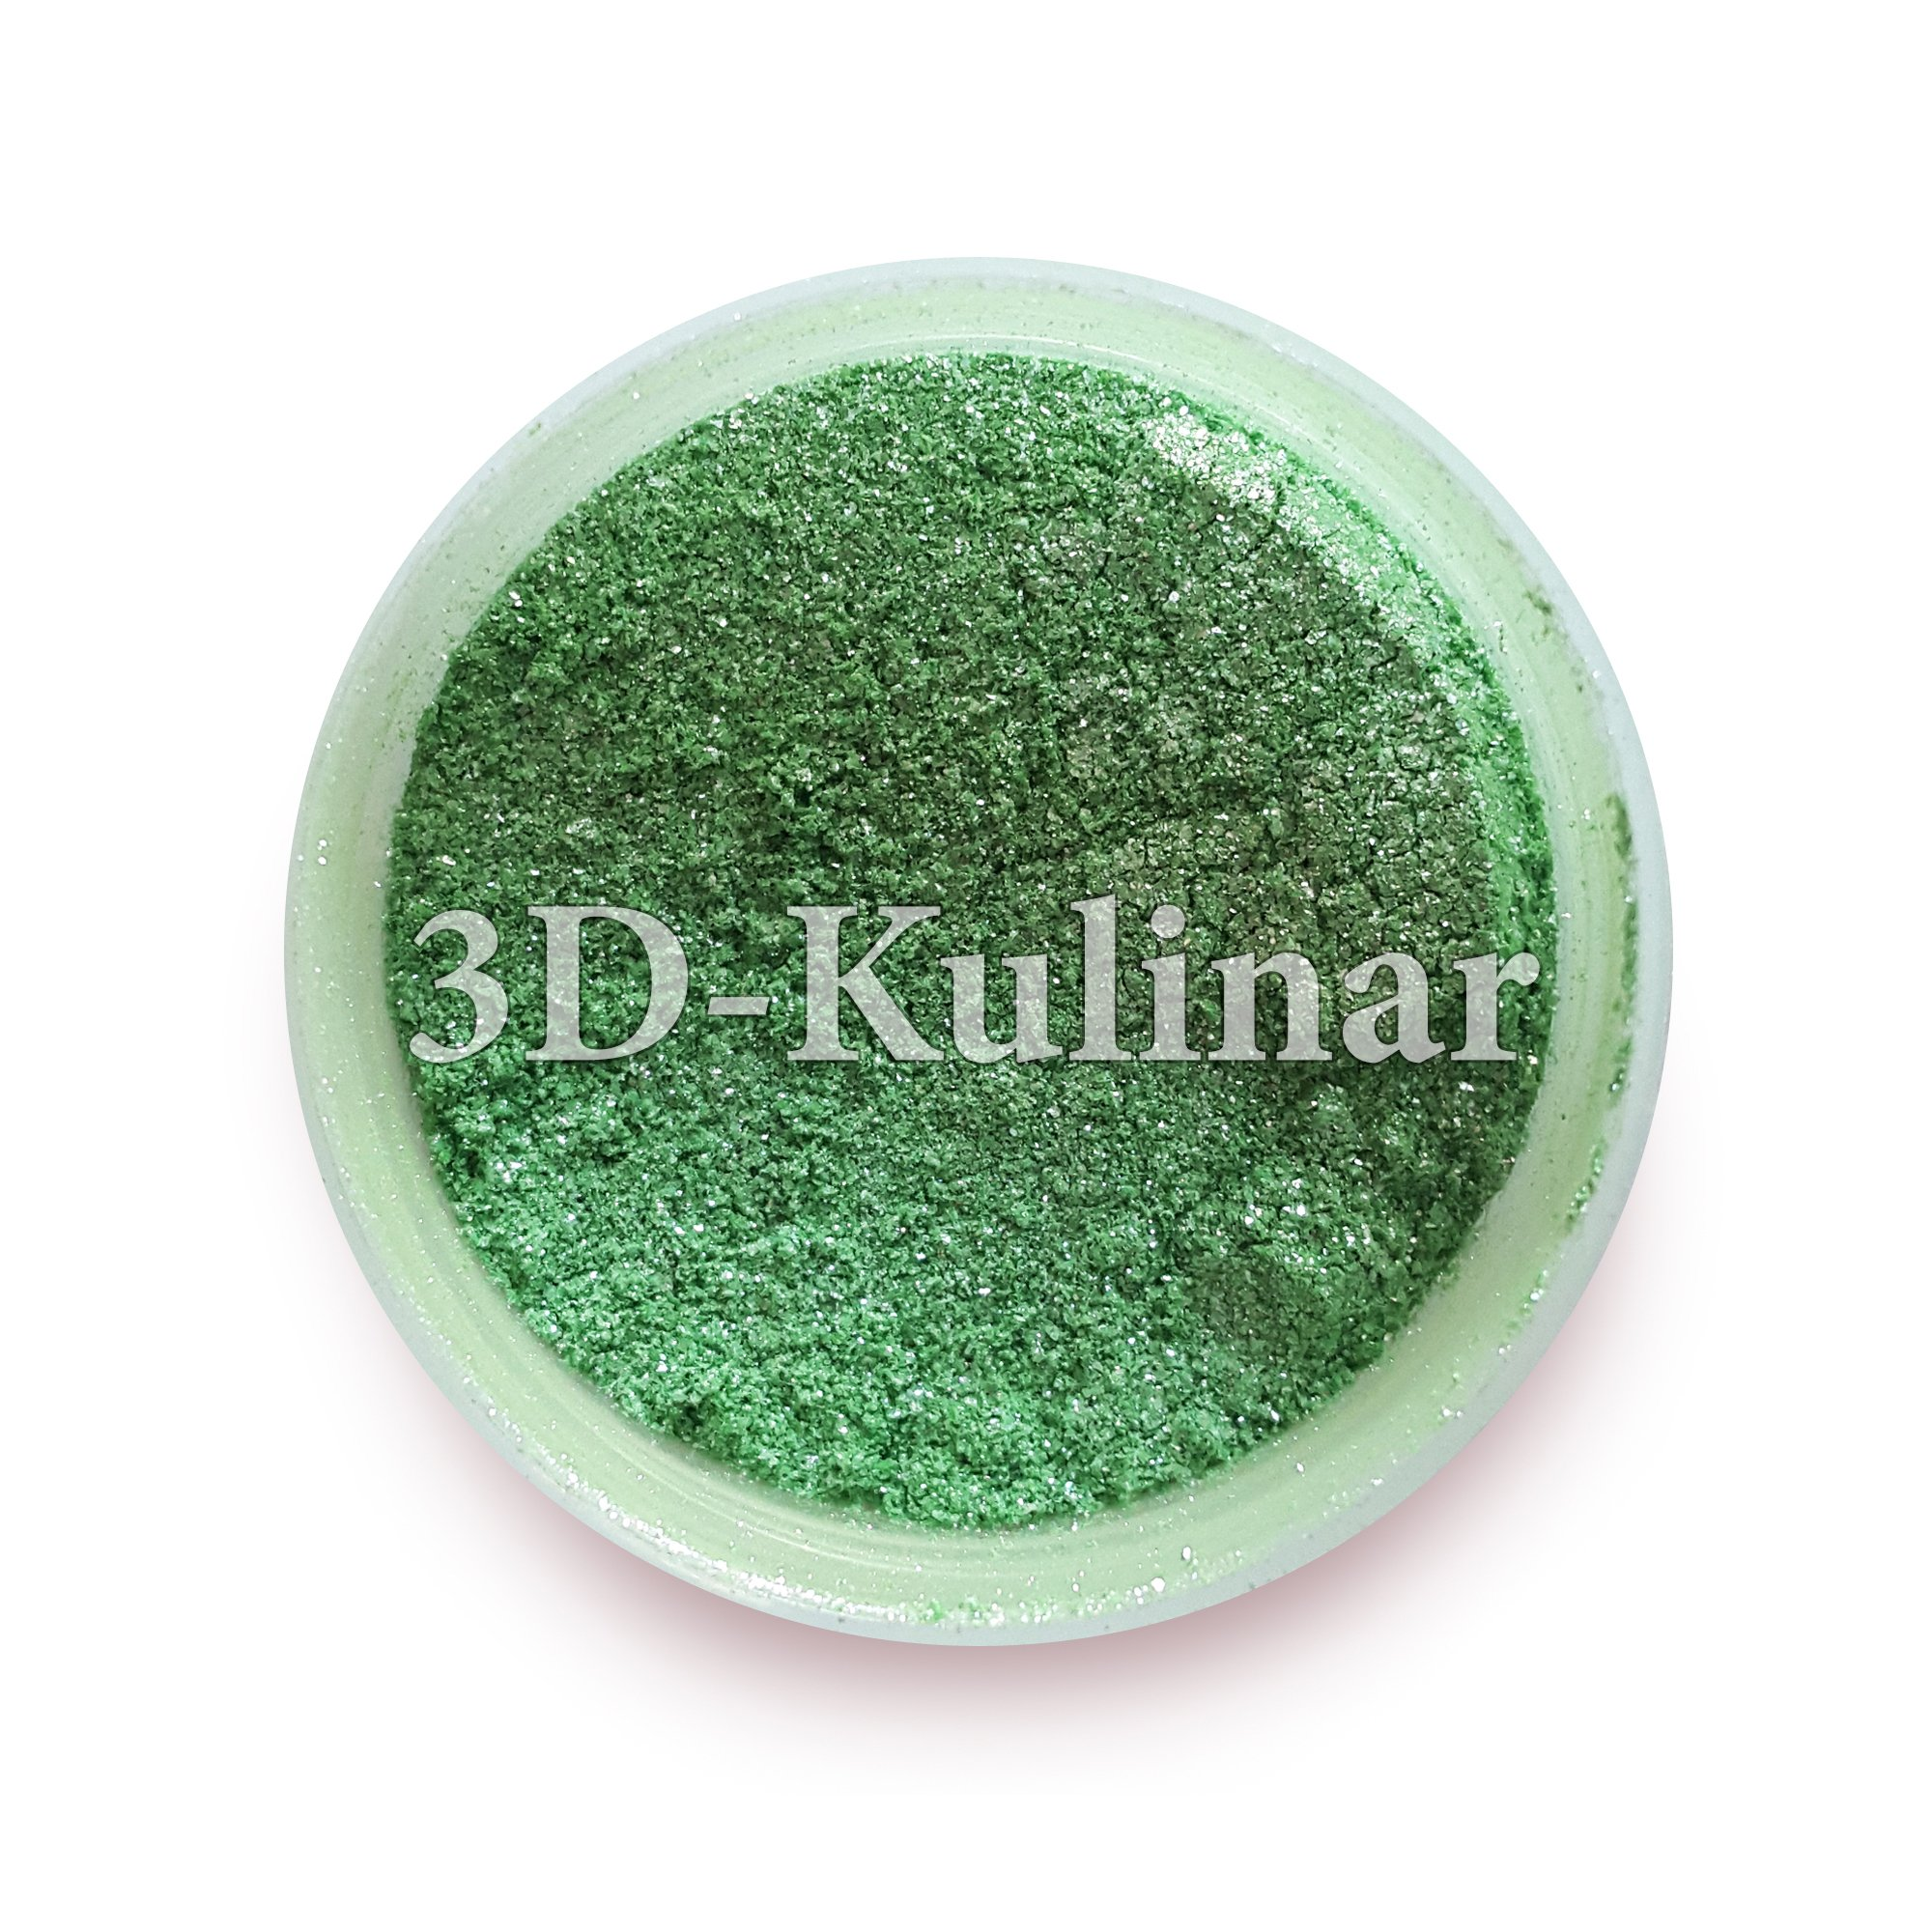 Green food coloring powder 5 gr